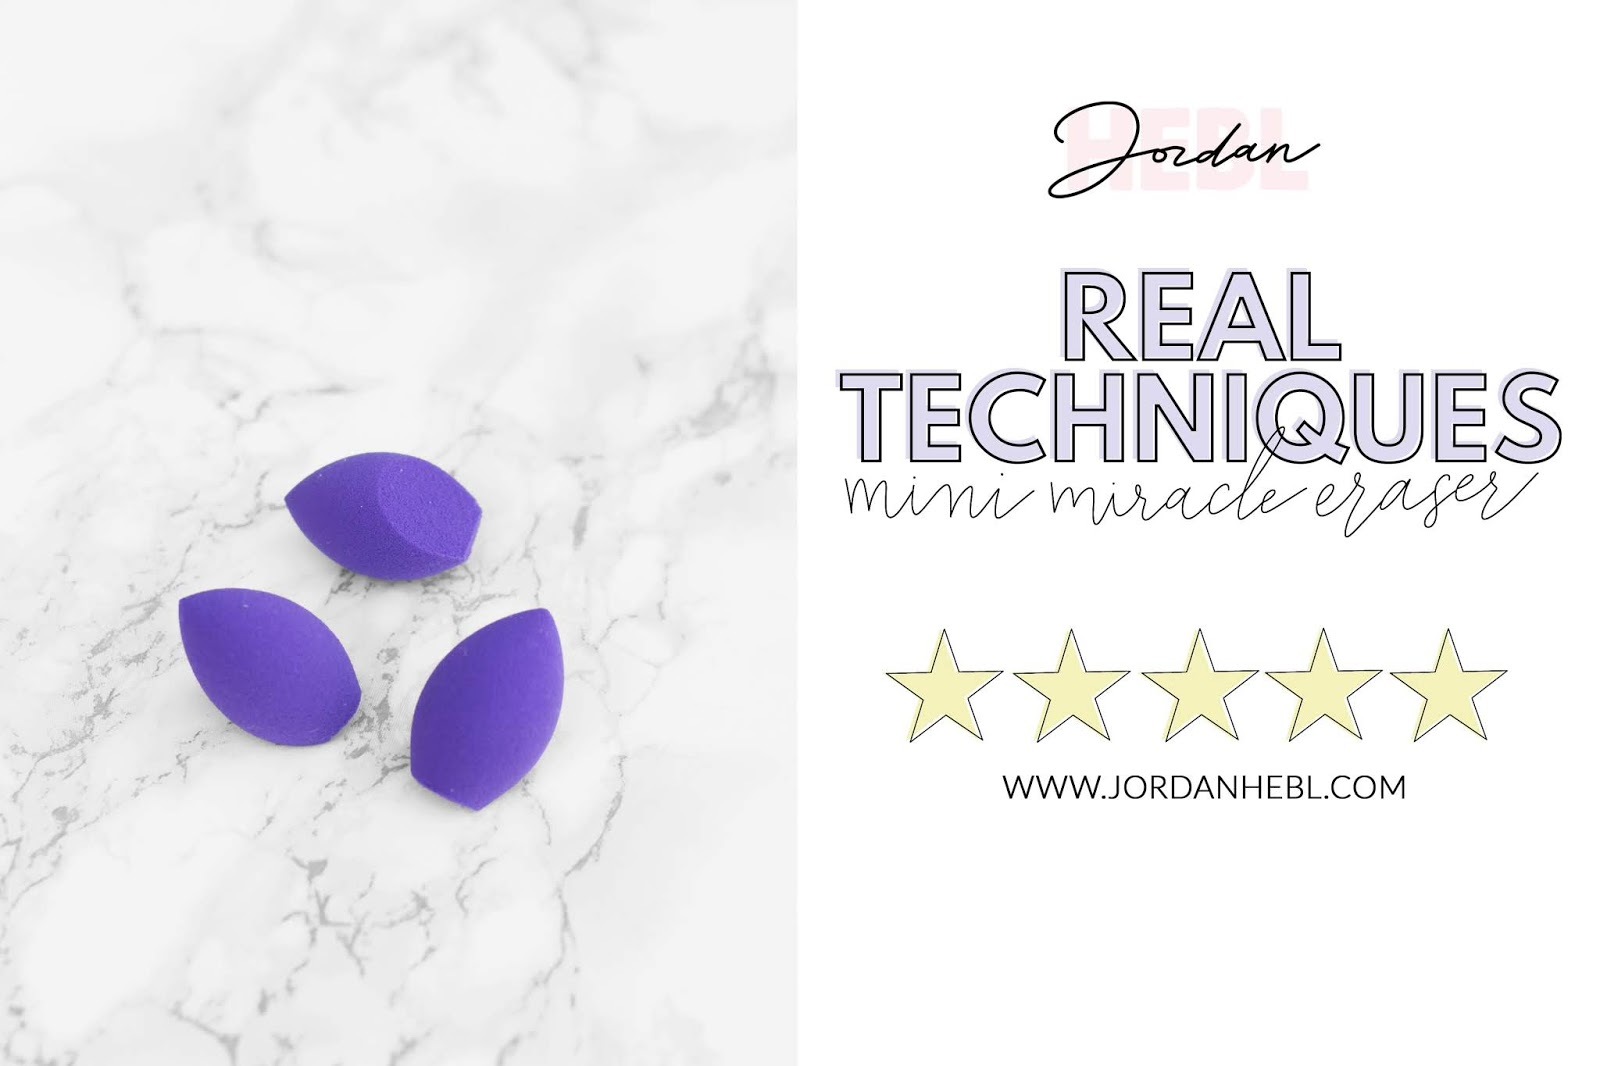 real techniques mini purple sponge, comparing makeup sponges, purple mini makeup sponge with marble background, beauty comparisons, beauty blogger